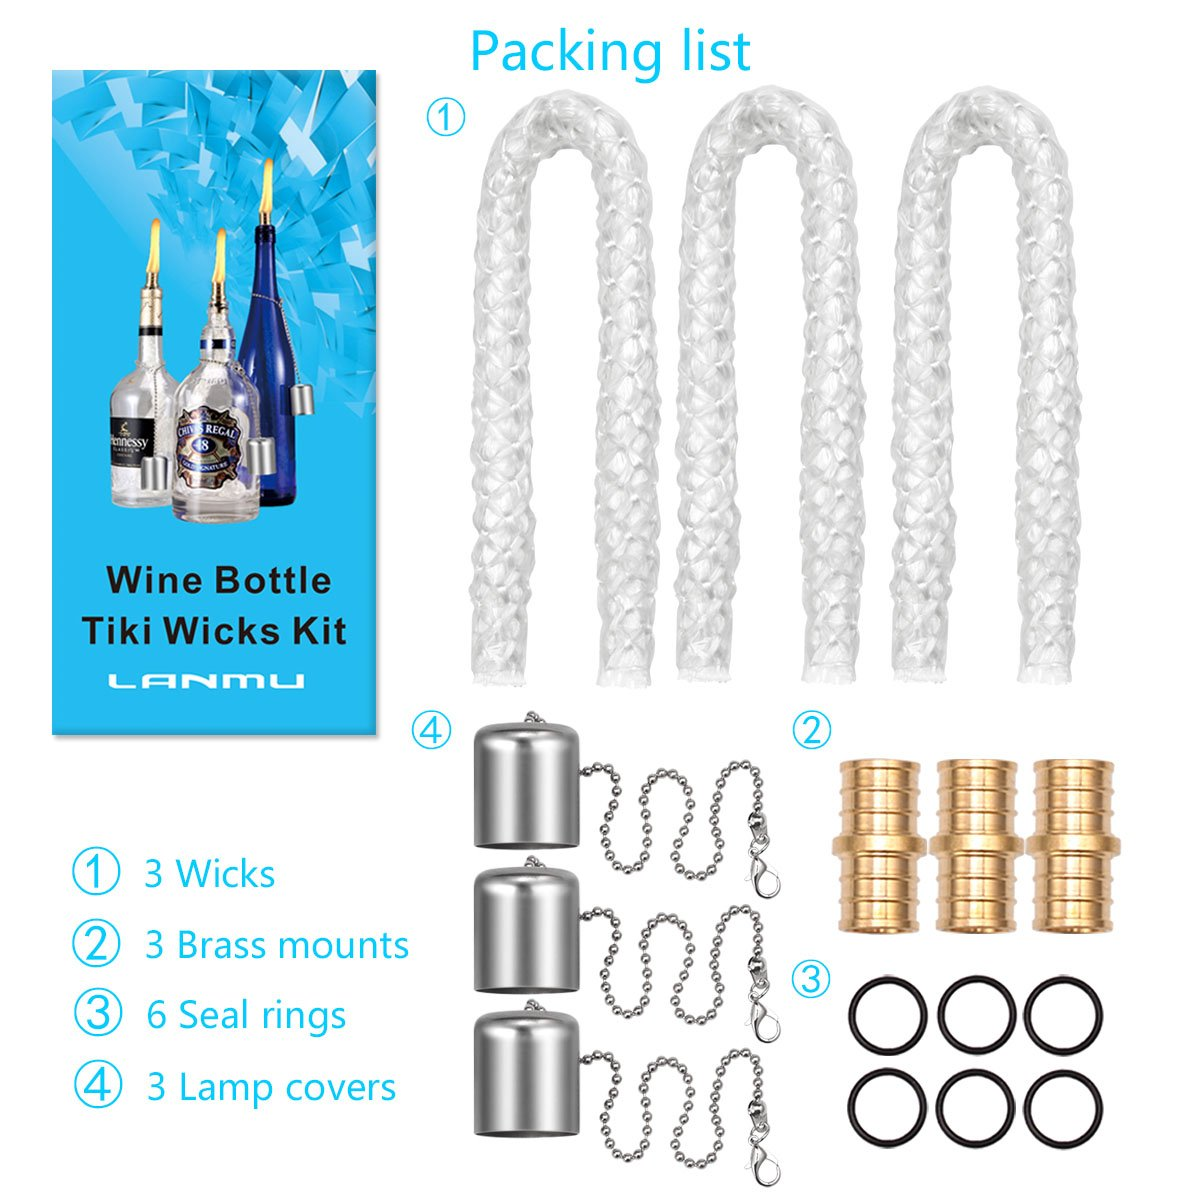 LANMU Wine Bottle Tiki Wicks,Oil Lamps,Tabletop Torch,Patio Torch,Table Top Torch Lantern Kit for Spring Summer Nights/Outdoors (3 Pack)